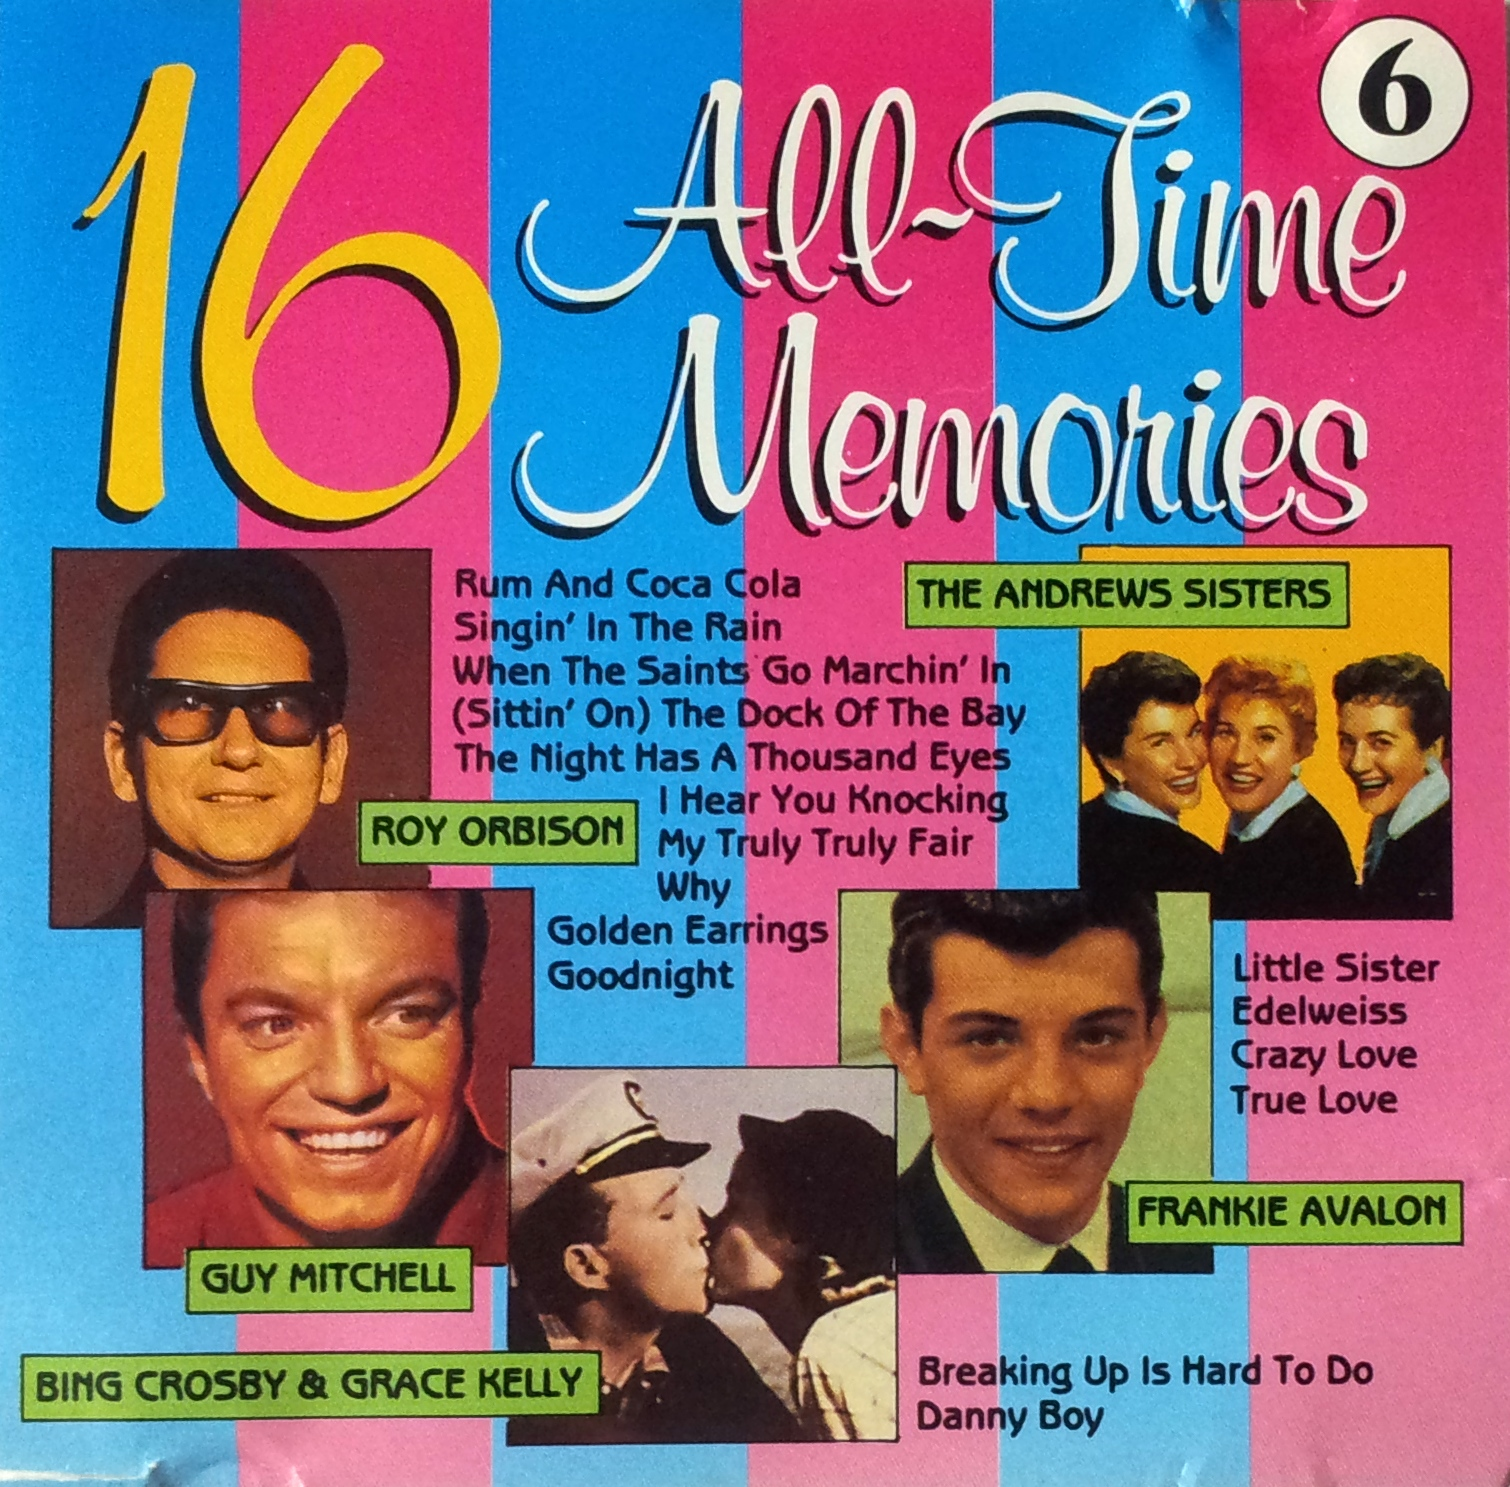 16 All time memories - 6